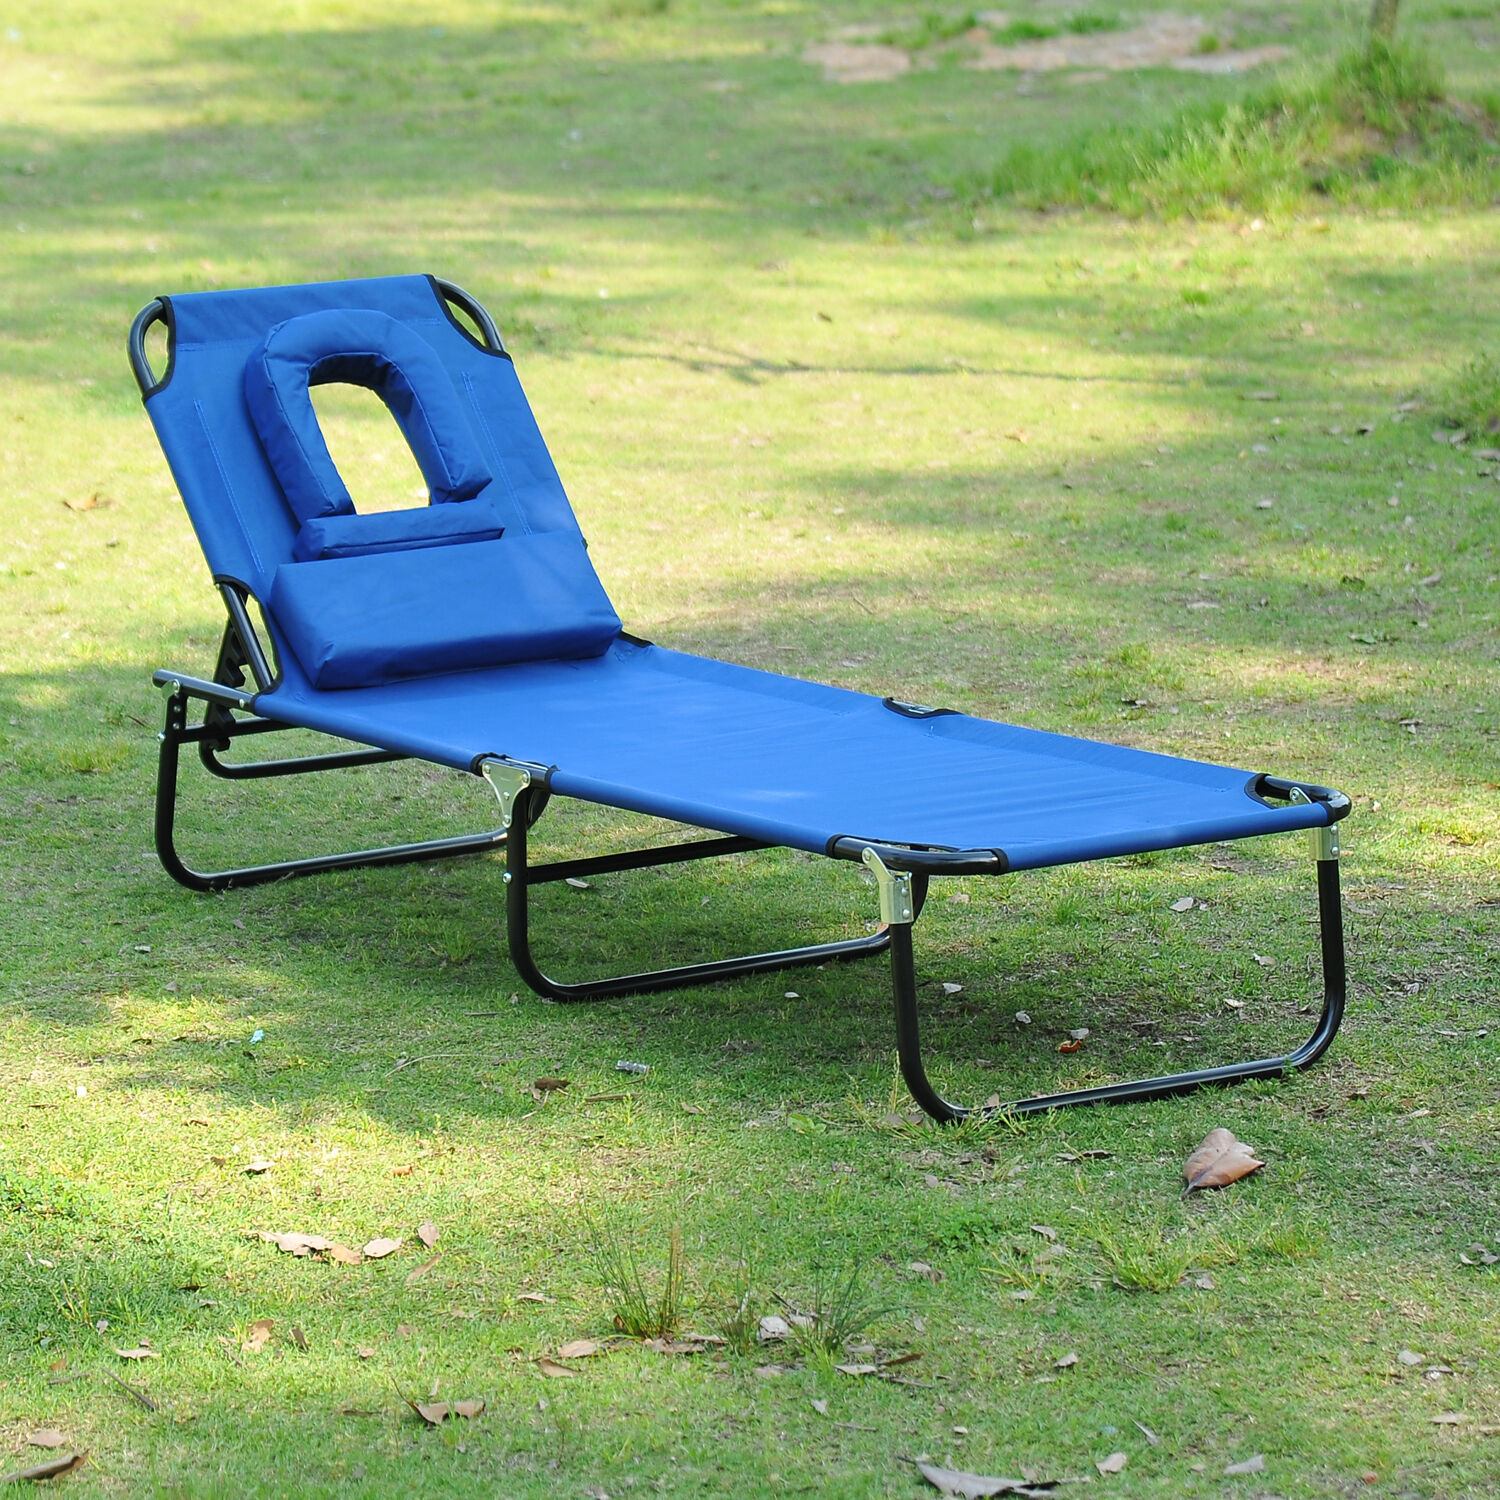 Folding Lounge Beach Chair Outdoor Lounge Chair Portable Folding Garden Sun Lounger